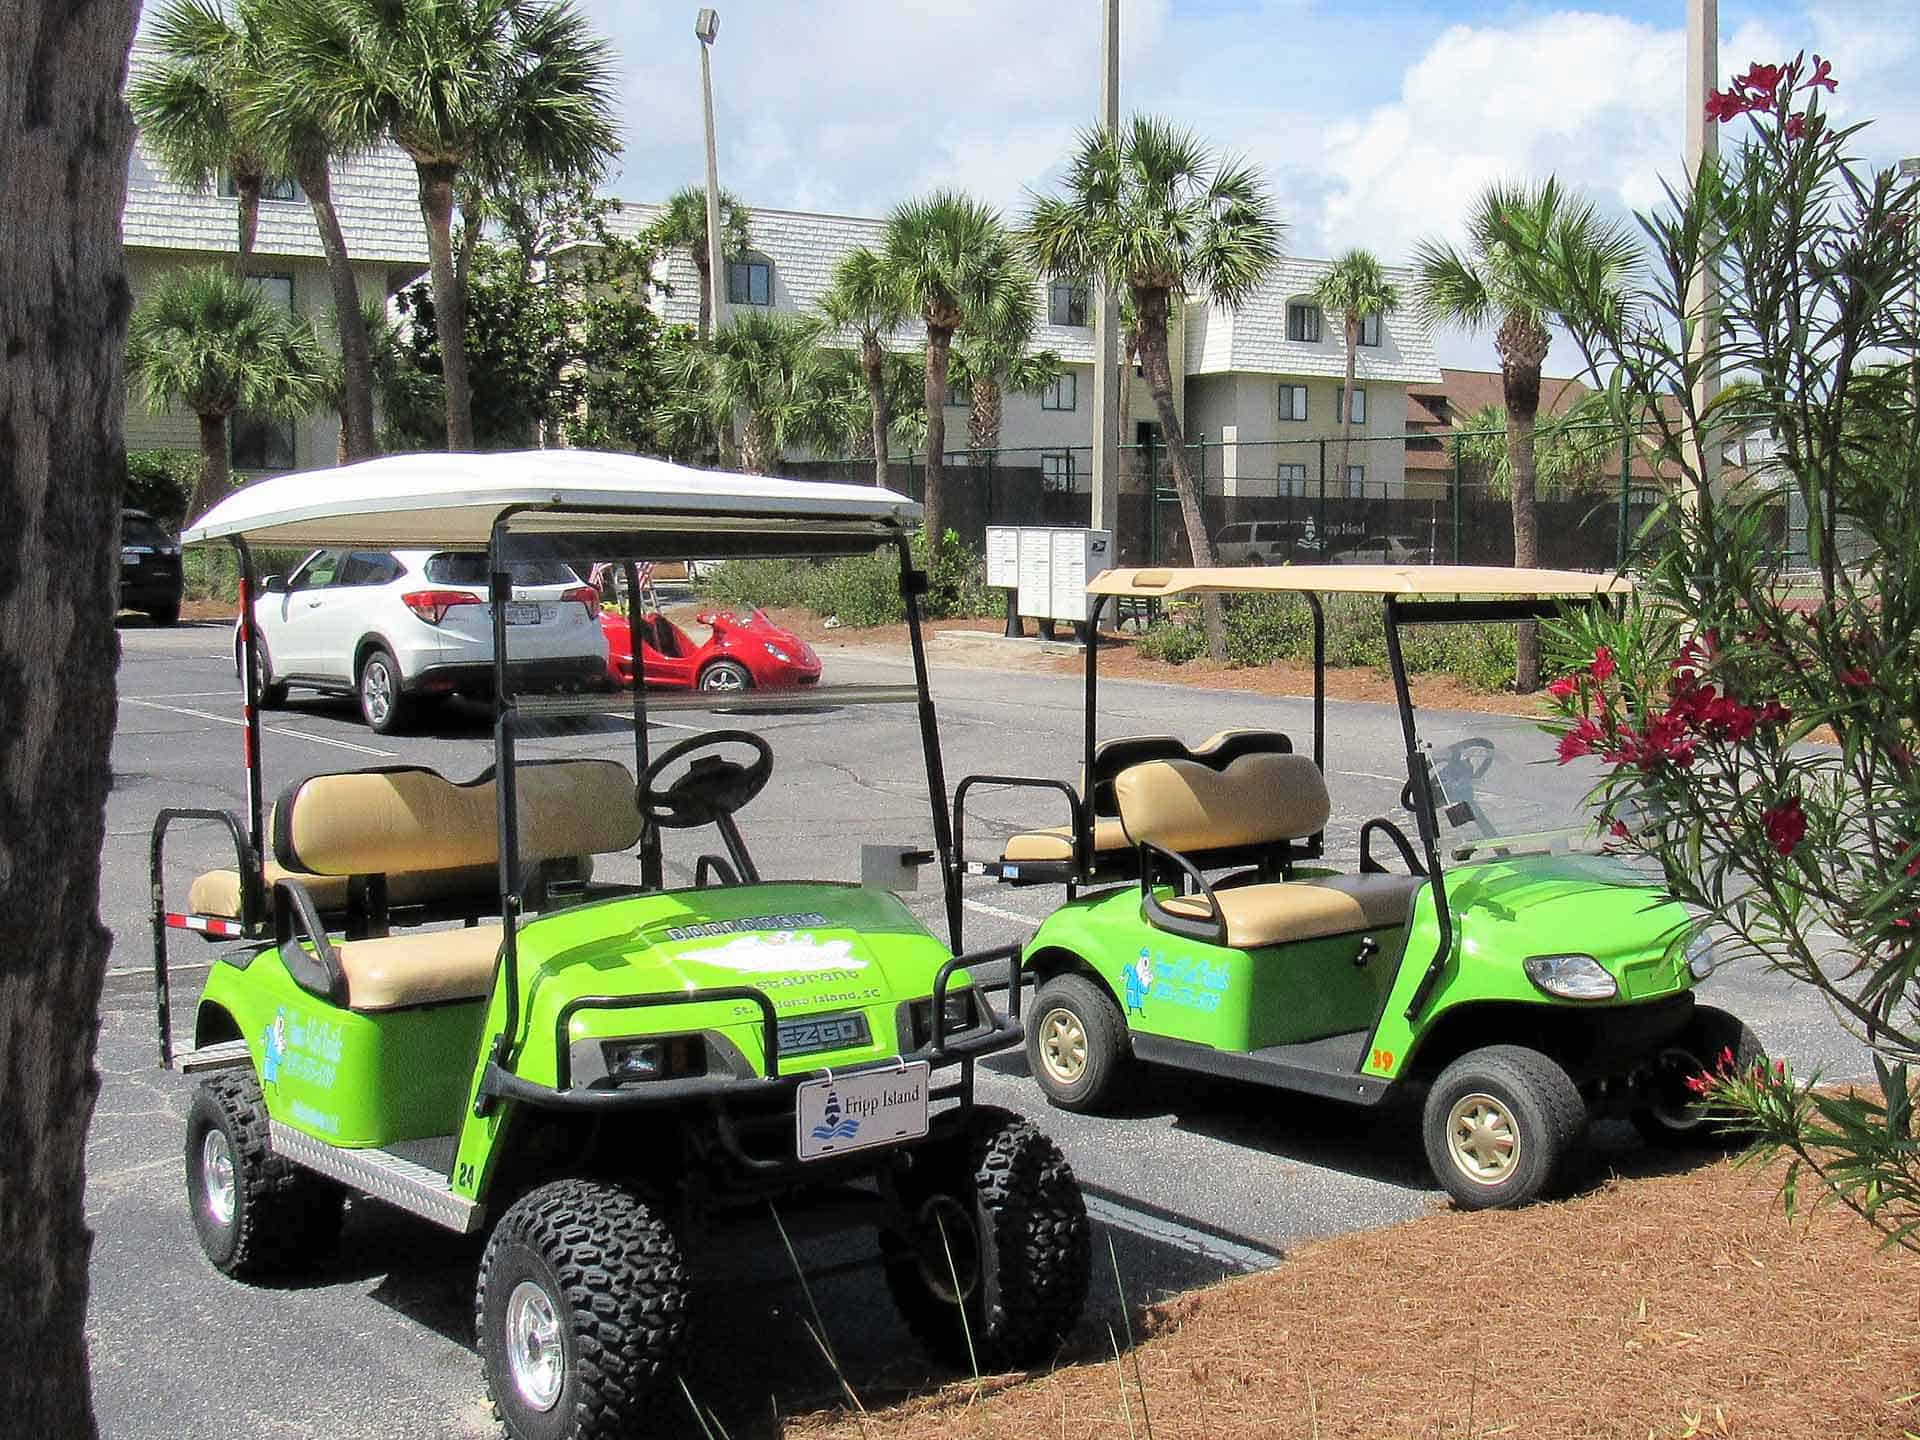 Fripp Island Vacations - We See'um Vacation Home and Golf Cart Rentals